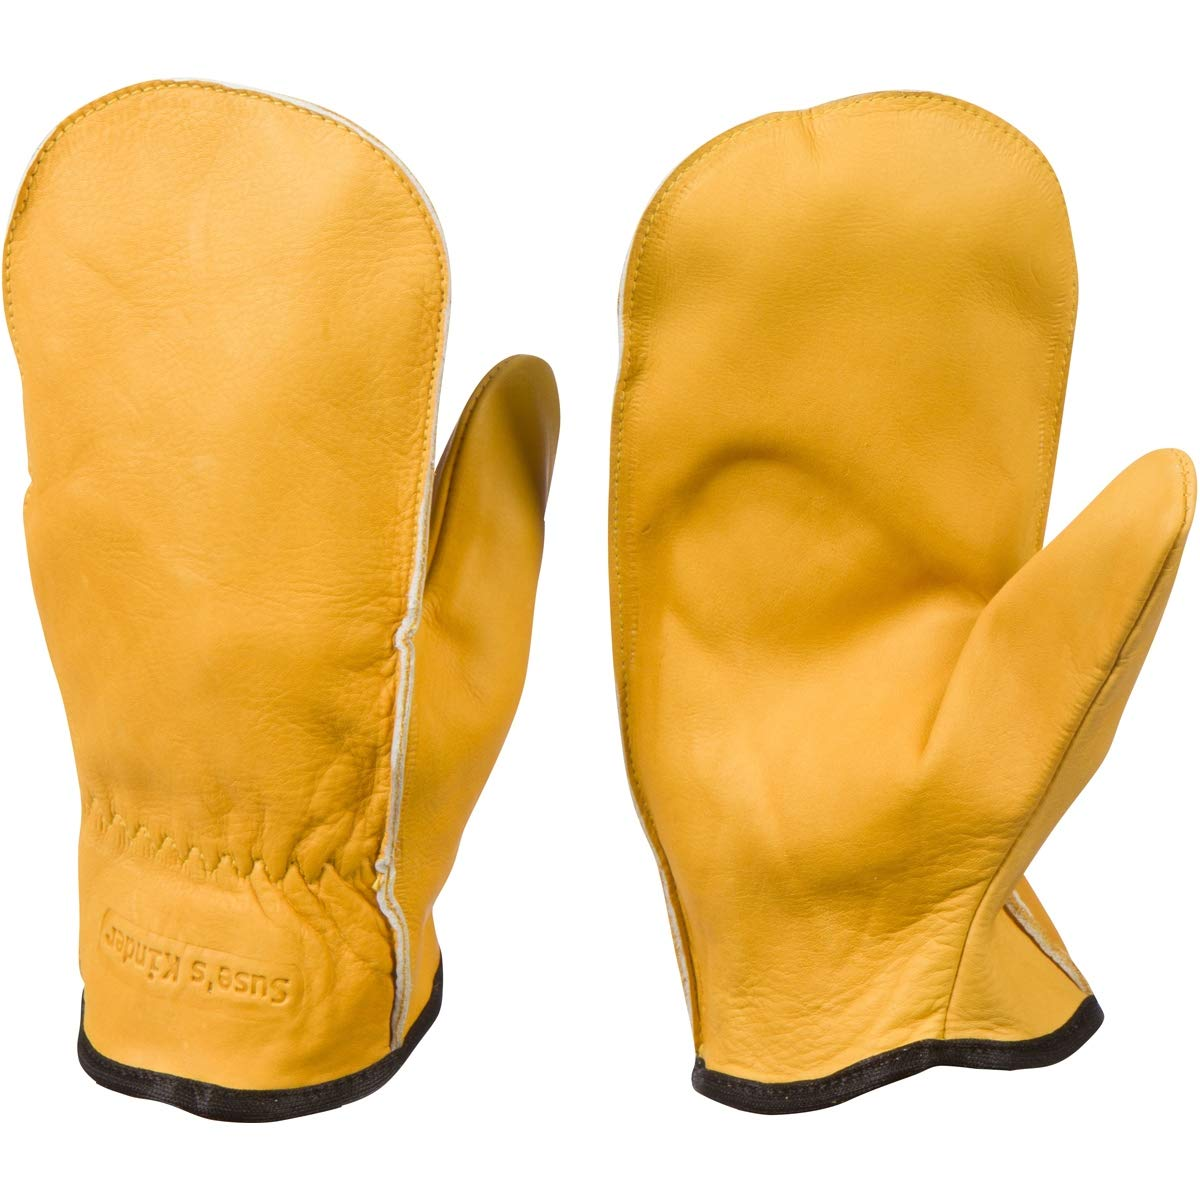 Chopper Mittens, Top Grain Cowhide, Unlined Pair of Mitts